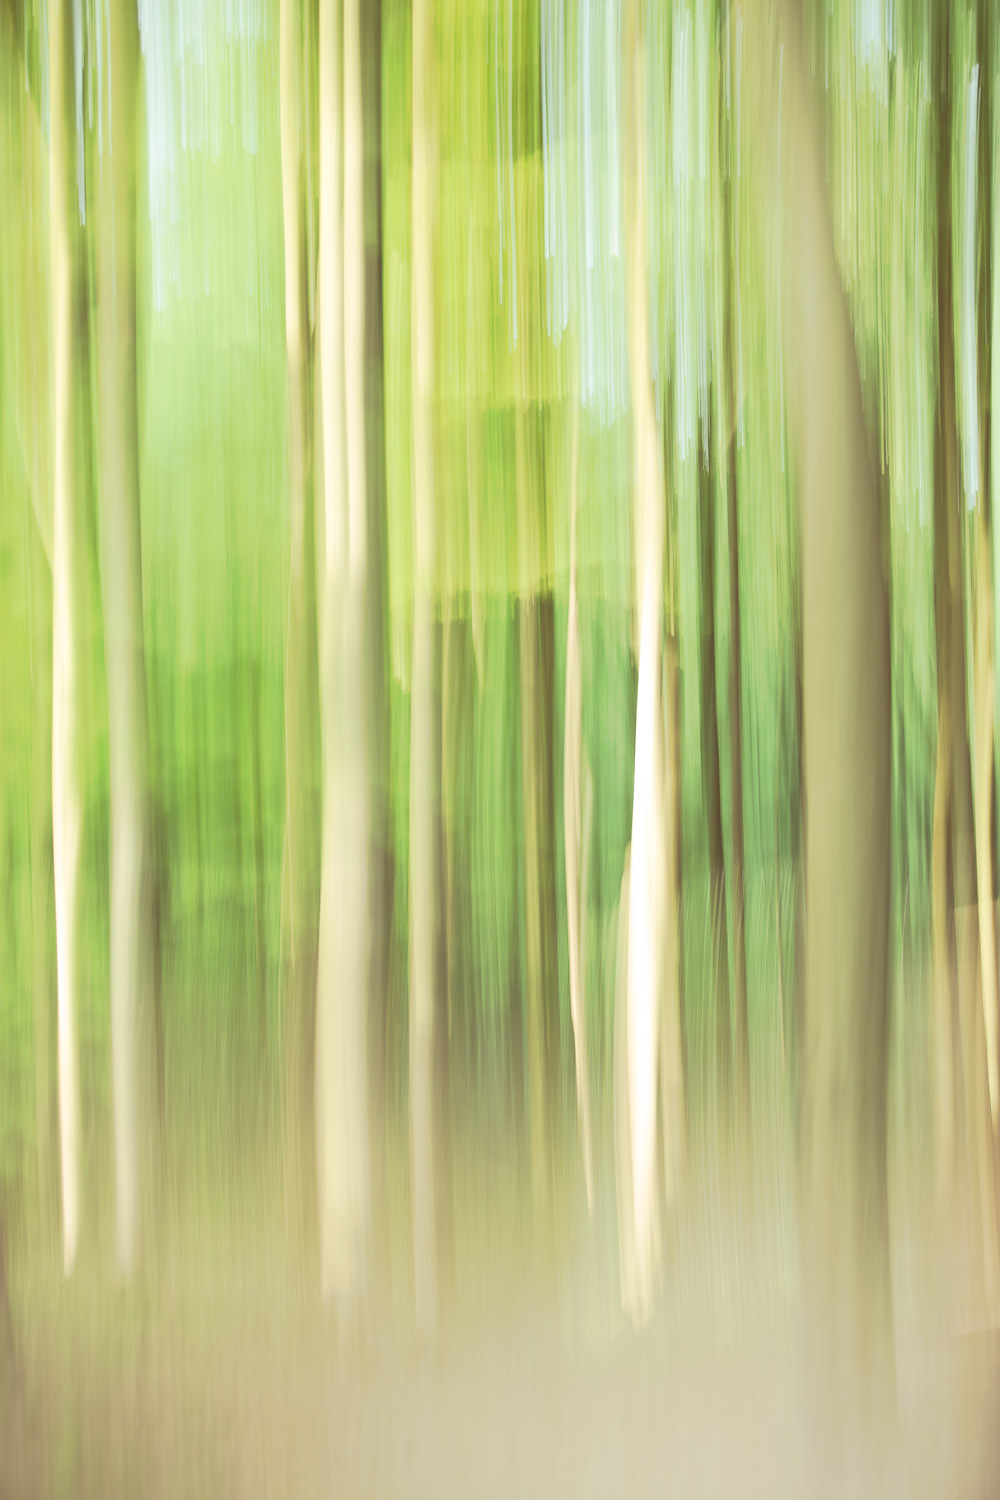 Moving Moments beach forest by Karen Ketels